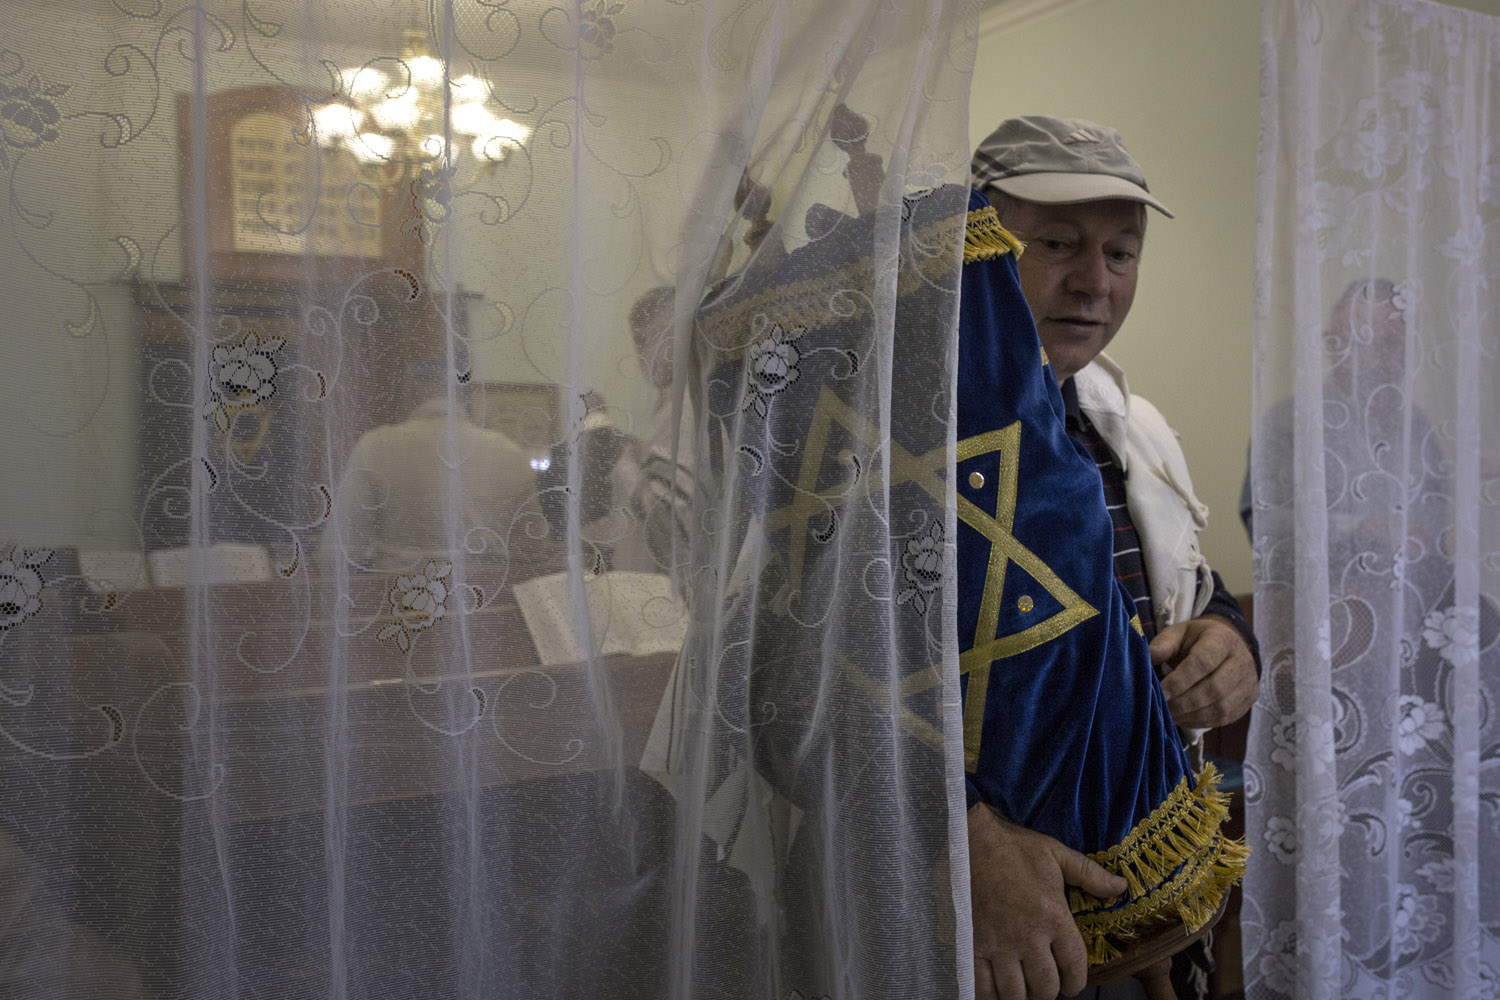 Vova, the president of the Jewish community of Khust, carries the Sefer Torah (Bible Scroll) during the shabbat prayers.